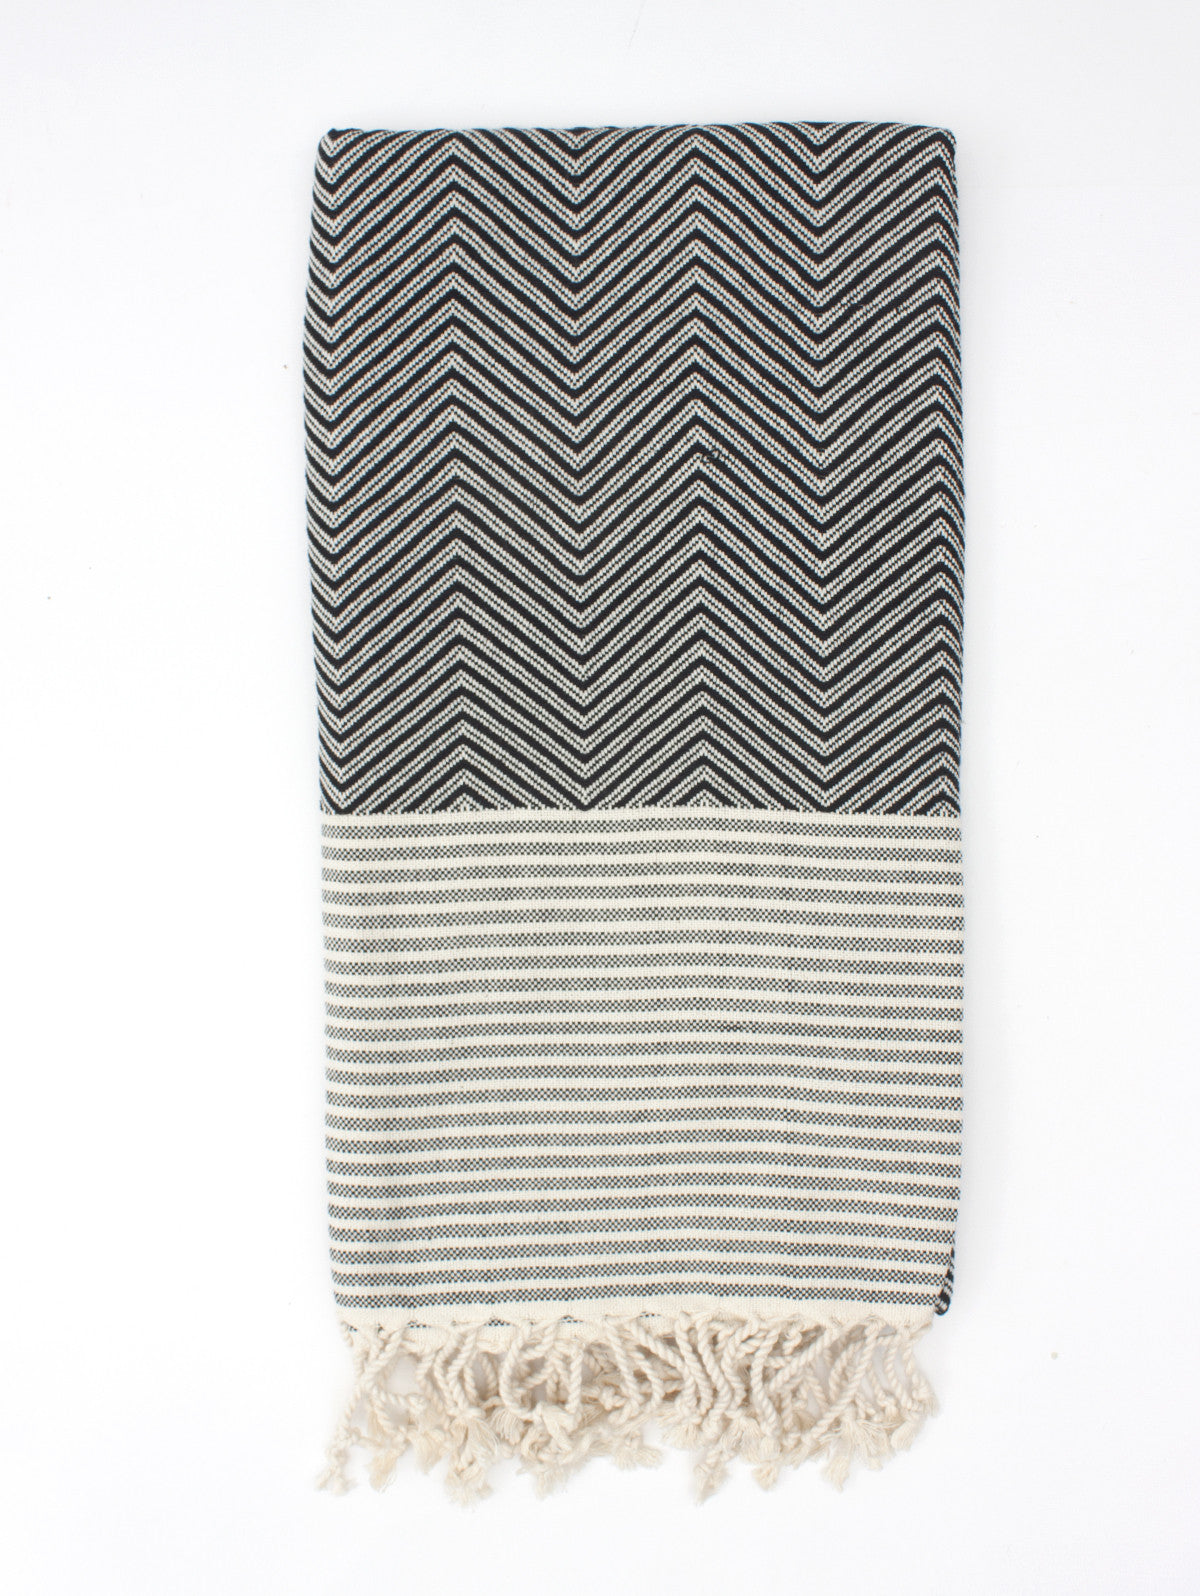 Malibu Hammam Towel, Black